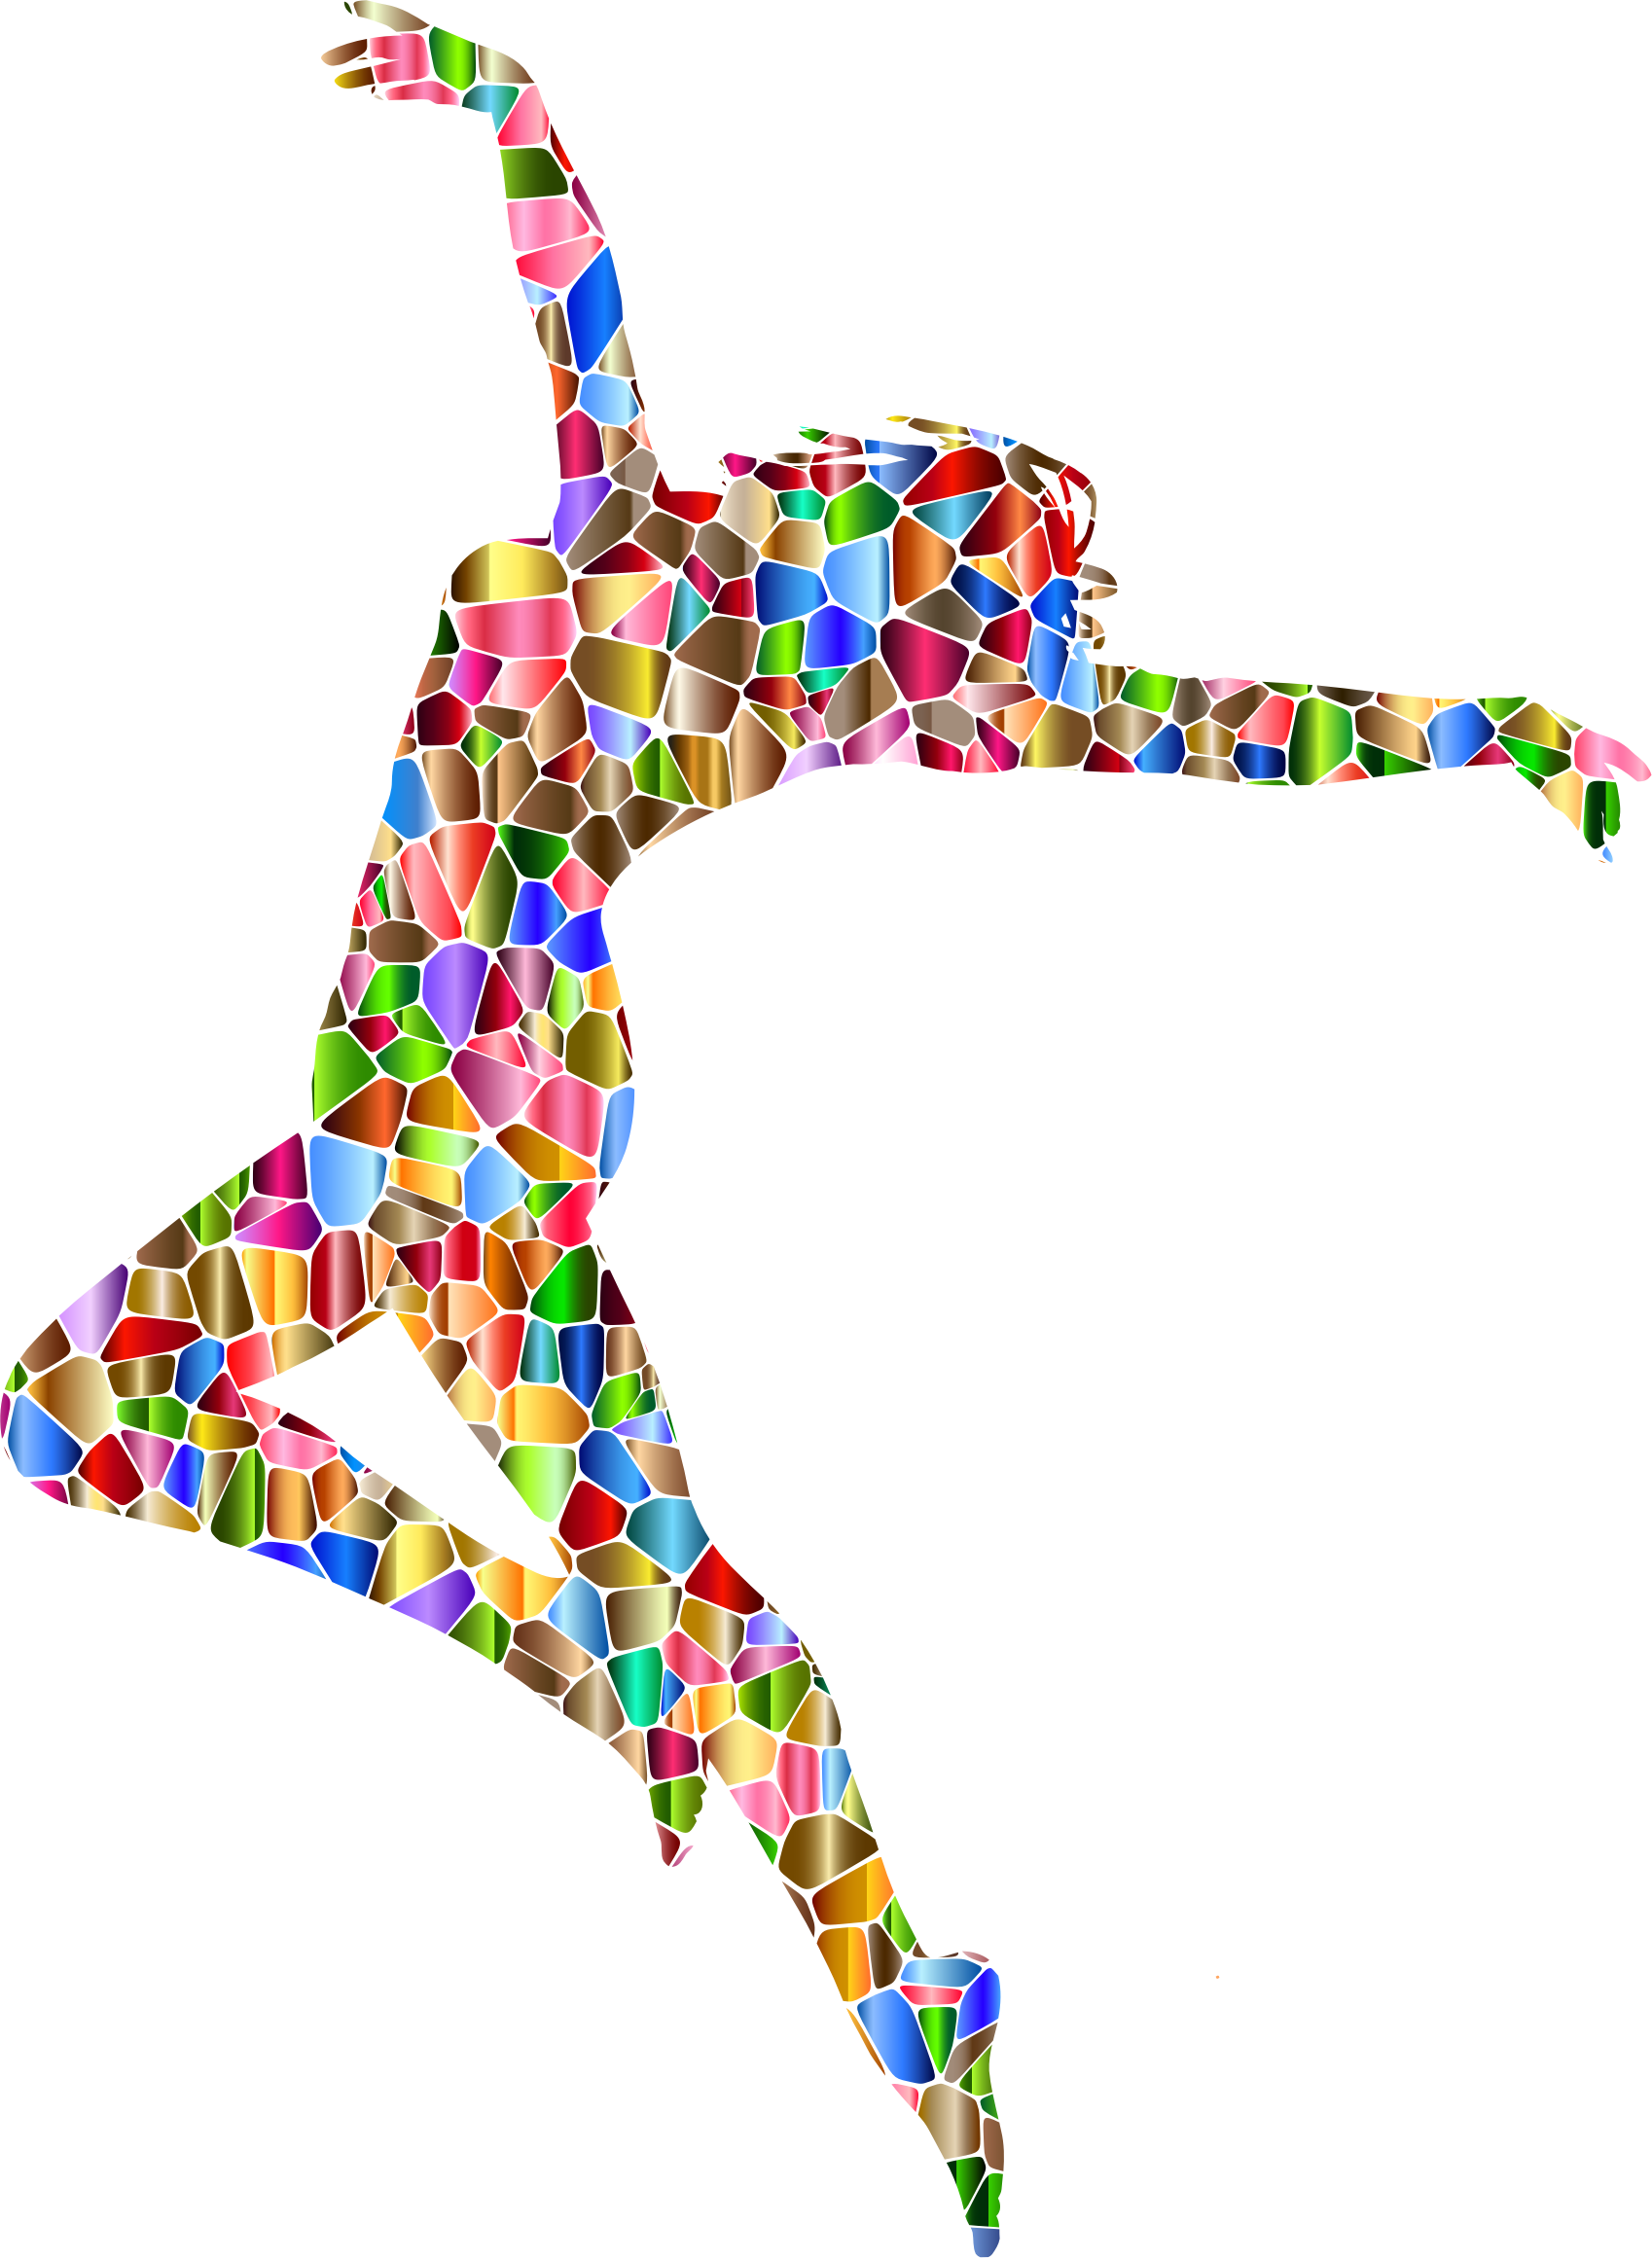 Chromatic Tiled Carefree Dancing Woman Silhouette by GDJ